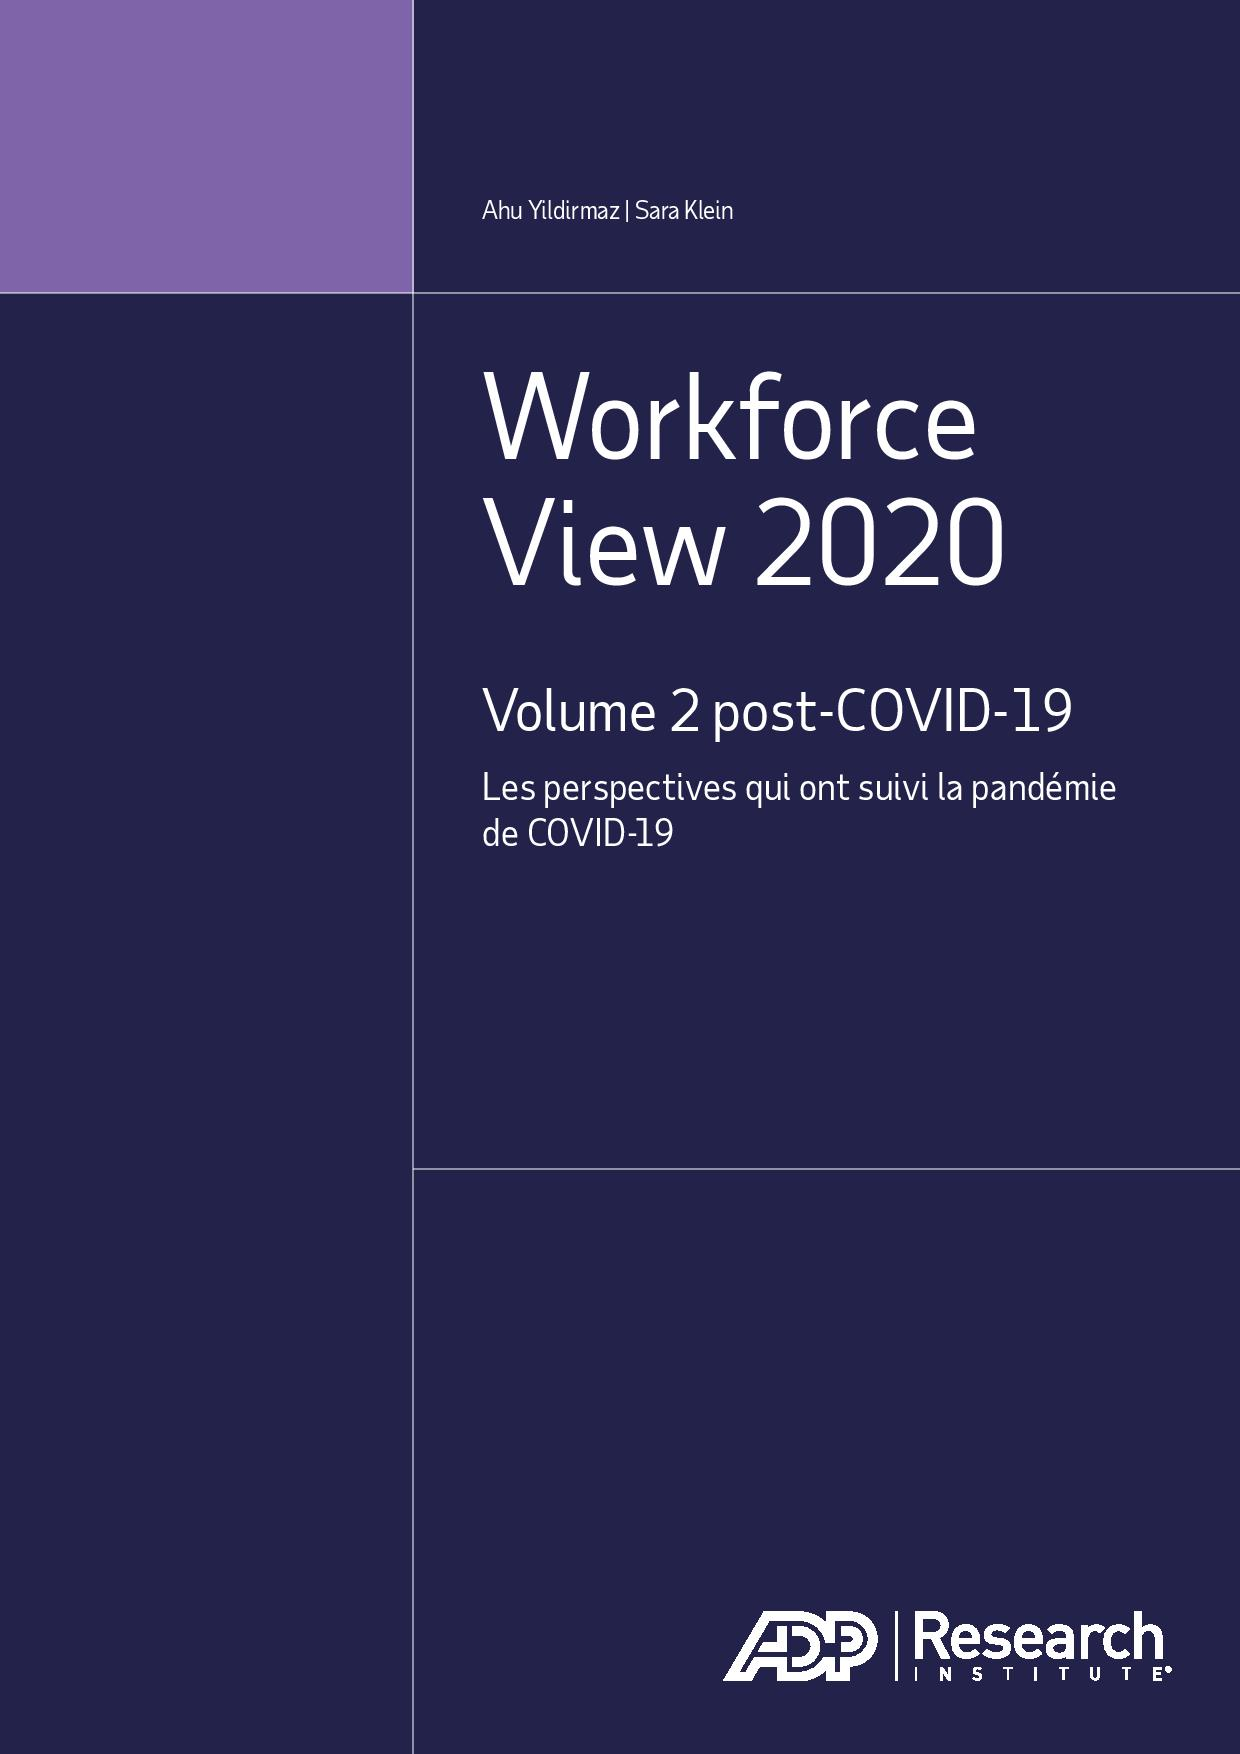 Workforce View 2020 Volume 2 post-COVID-19 Les perspectives qui ont suivi la pandémie de COVID-19